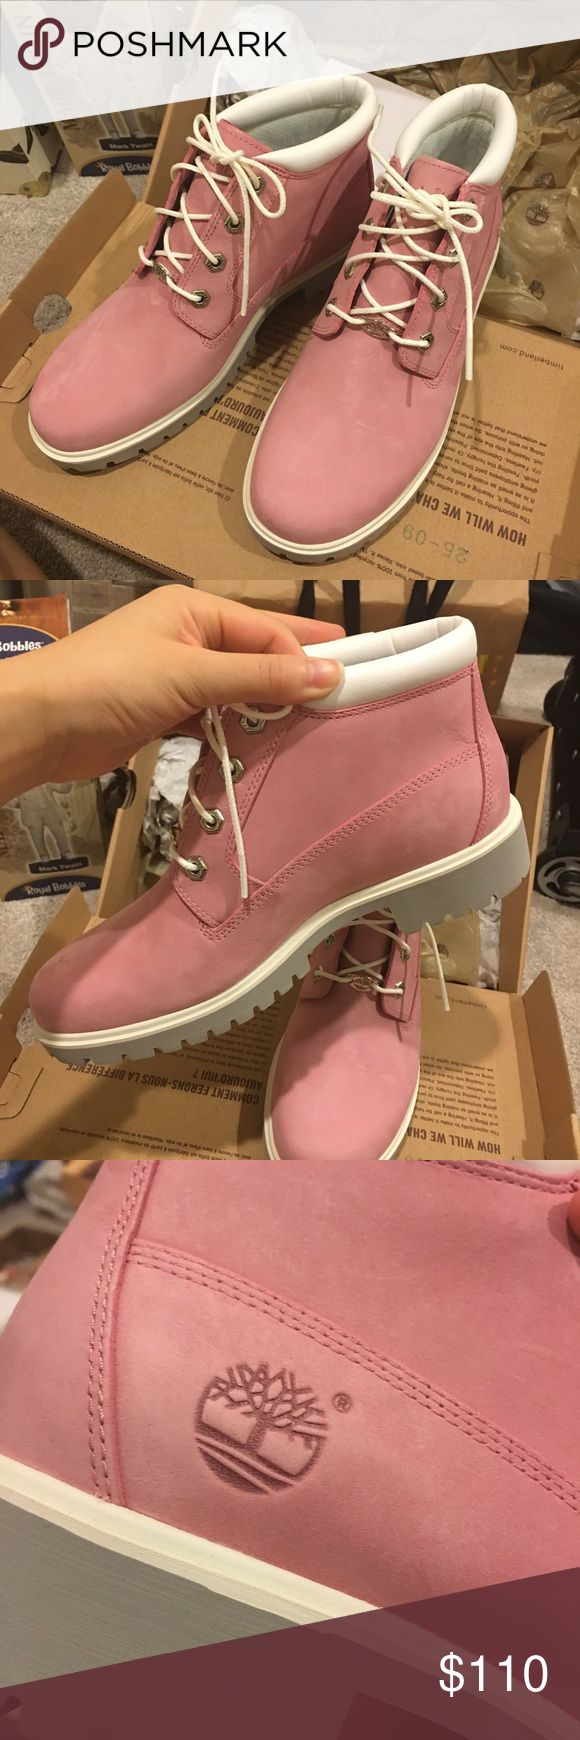 NEW Timberland Nellie in PINK Brand new, never worn, and still in the original box! This is a pair of Timberland Nellie in size 8, currently being sold on the timberland website for $130. Super cute and comfy! Timberland Shoes Ankle Boots & Booties